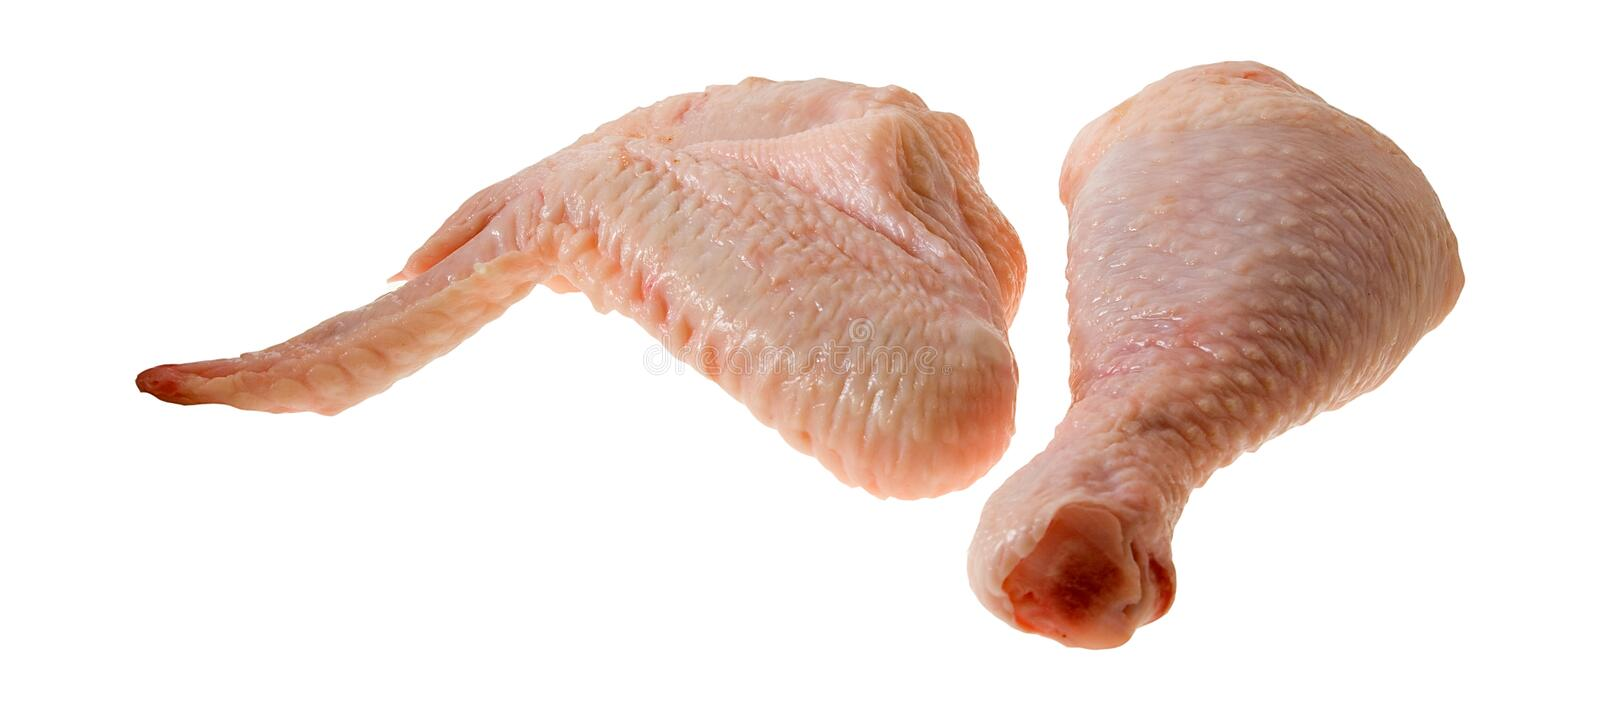 Chicken5 royalty free stock image